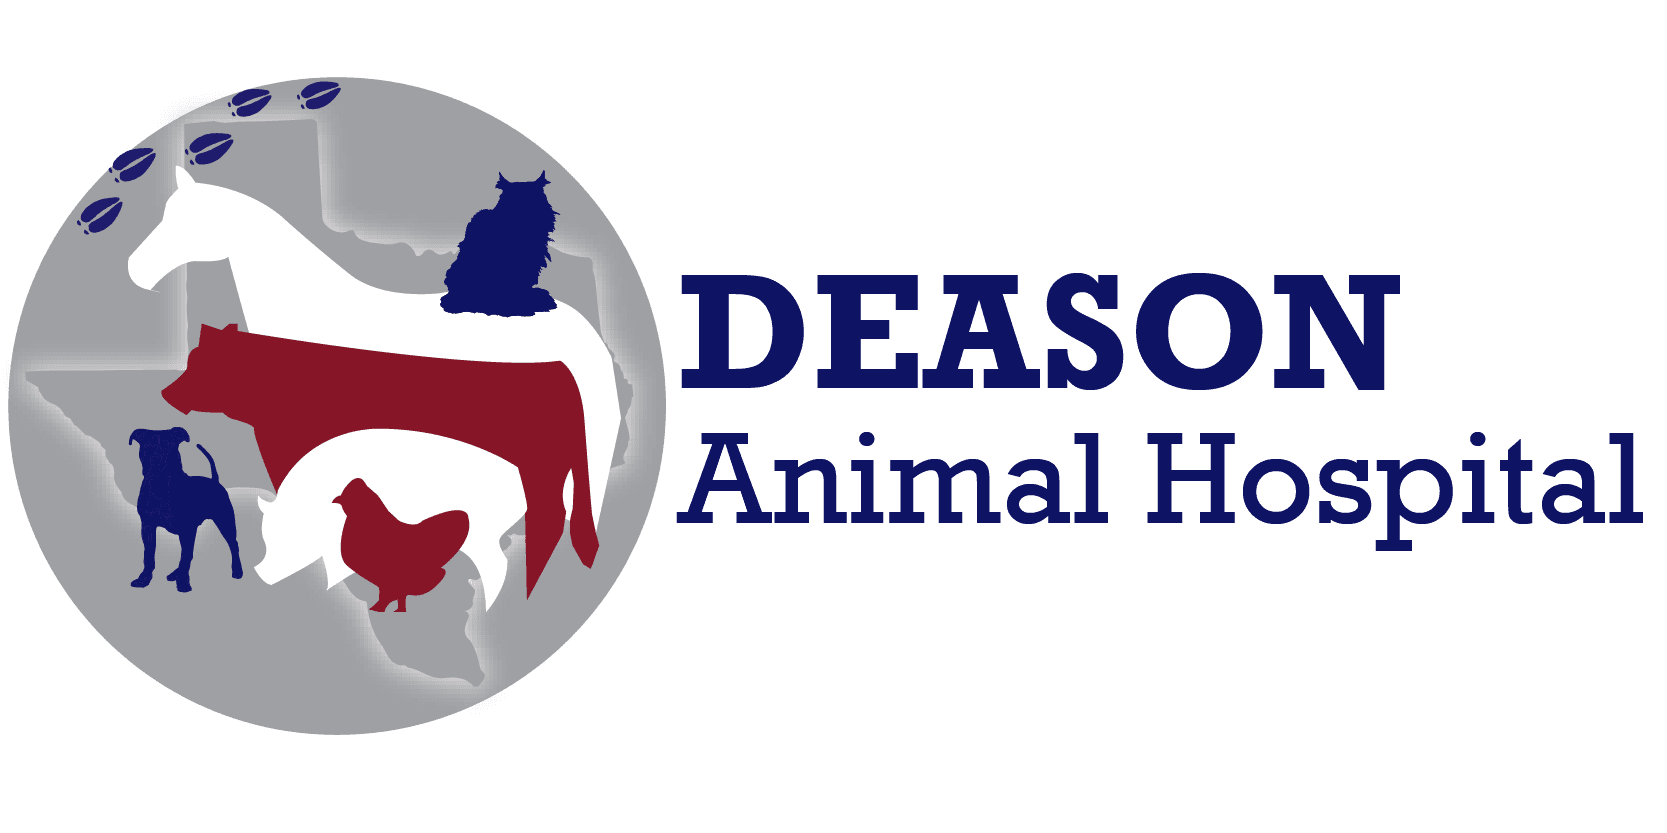 Horse veterinarians serving Floresville Texas, Stockdale, Pleasanton and Wilson County Texas